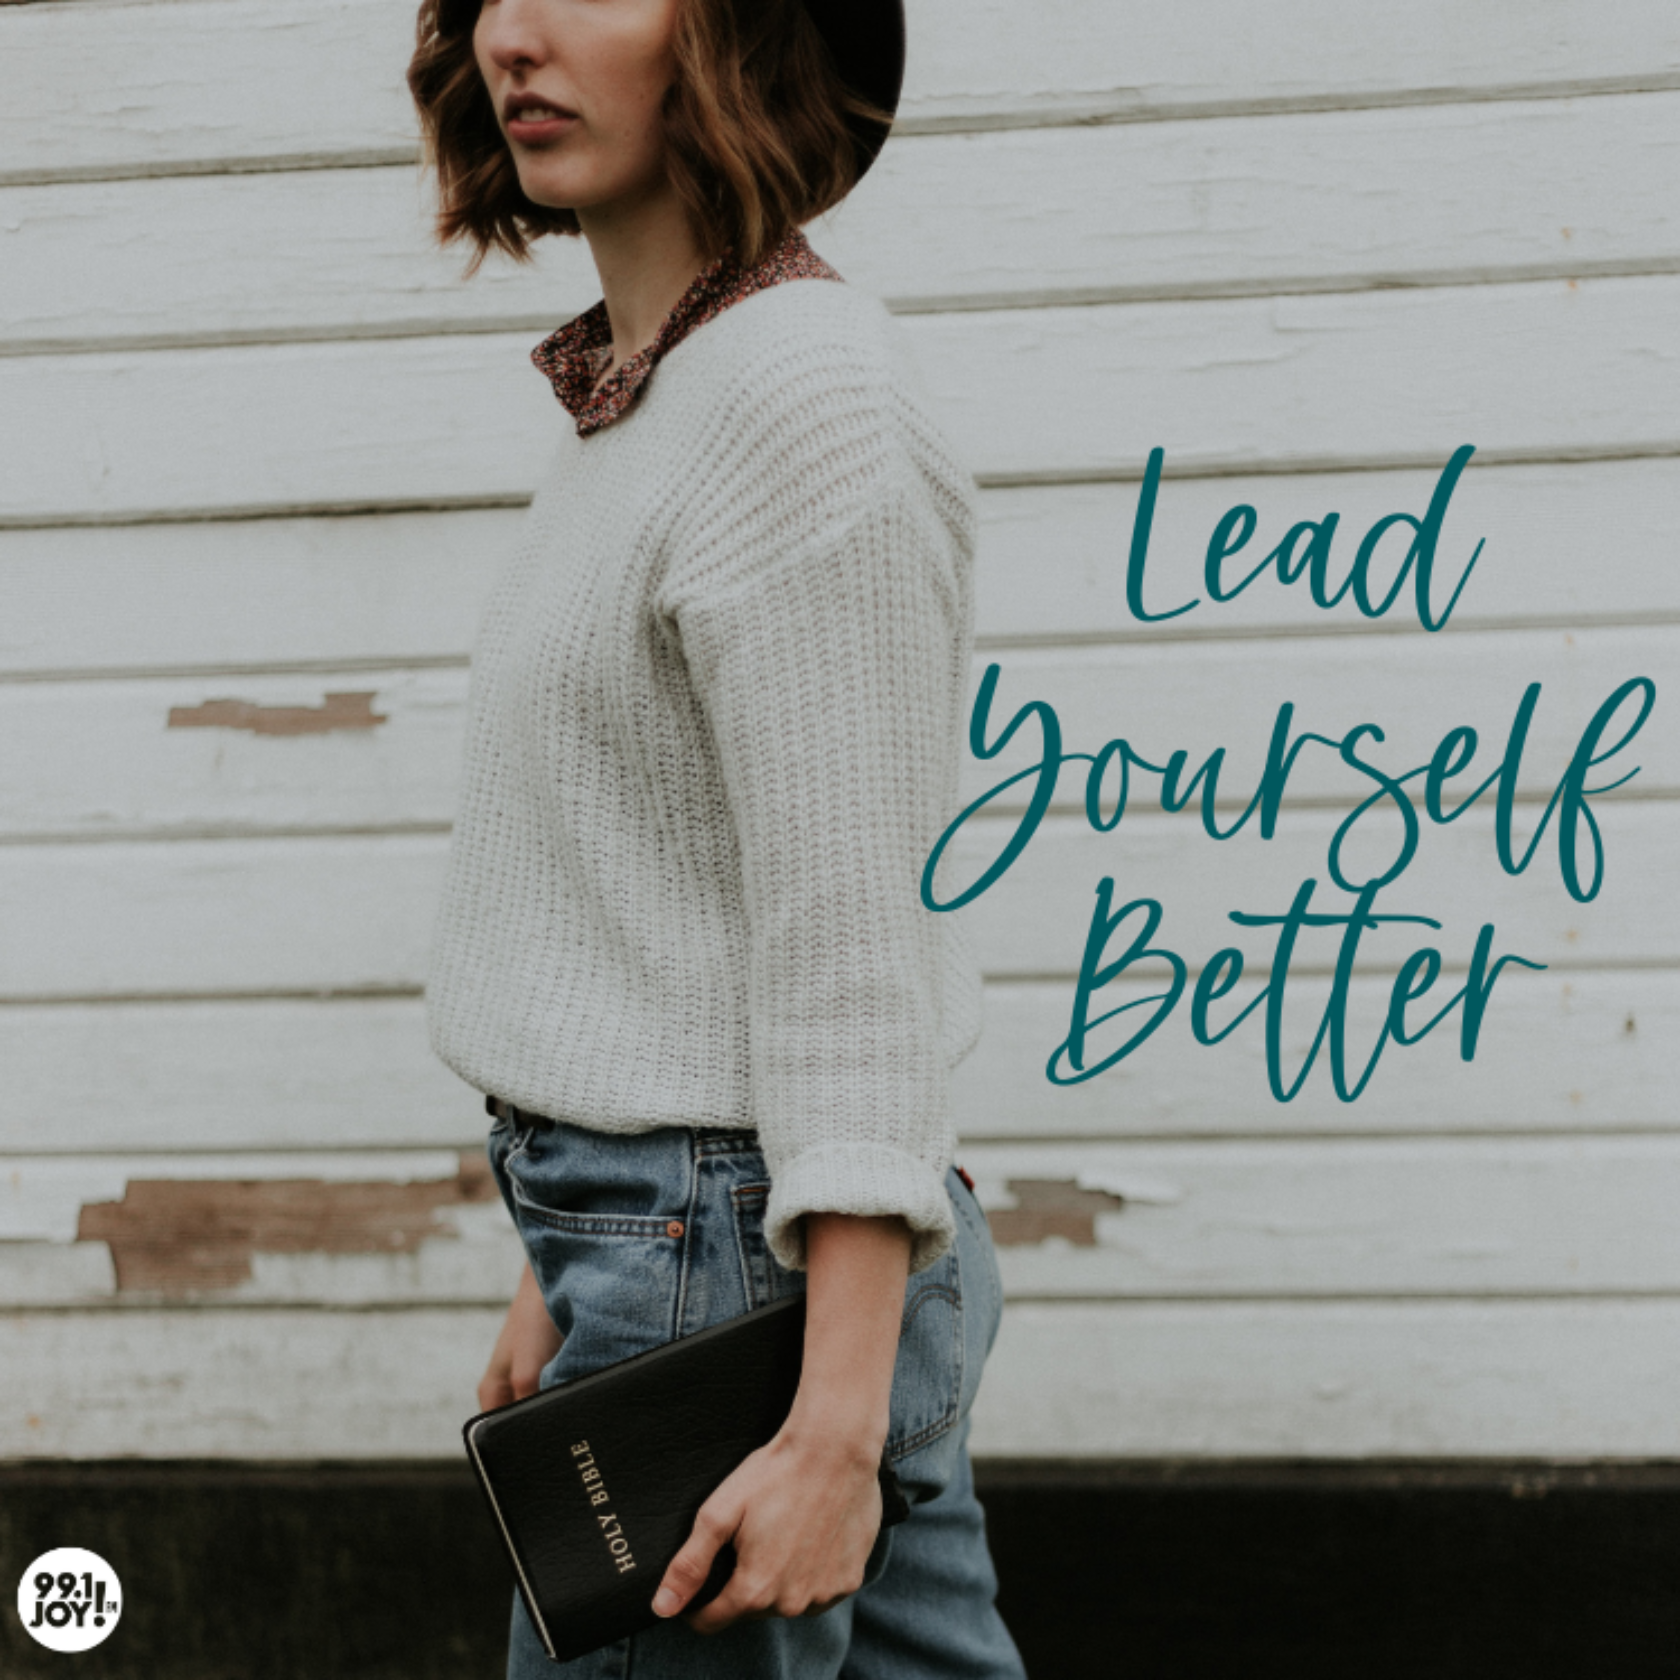 Leading Yourself Better